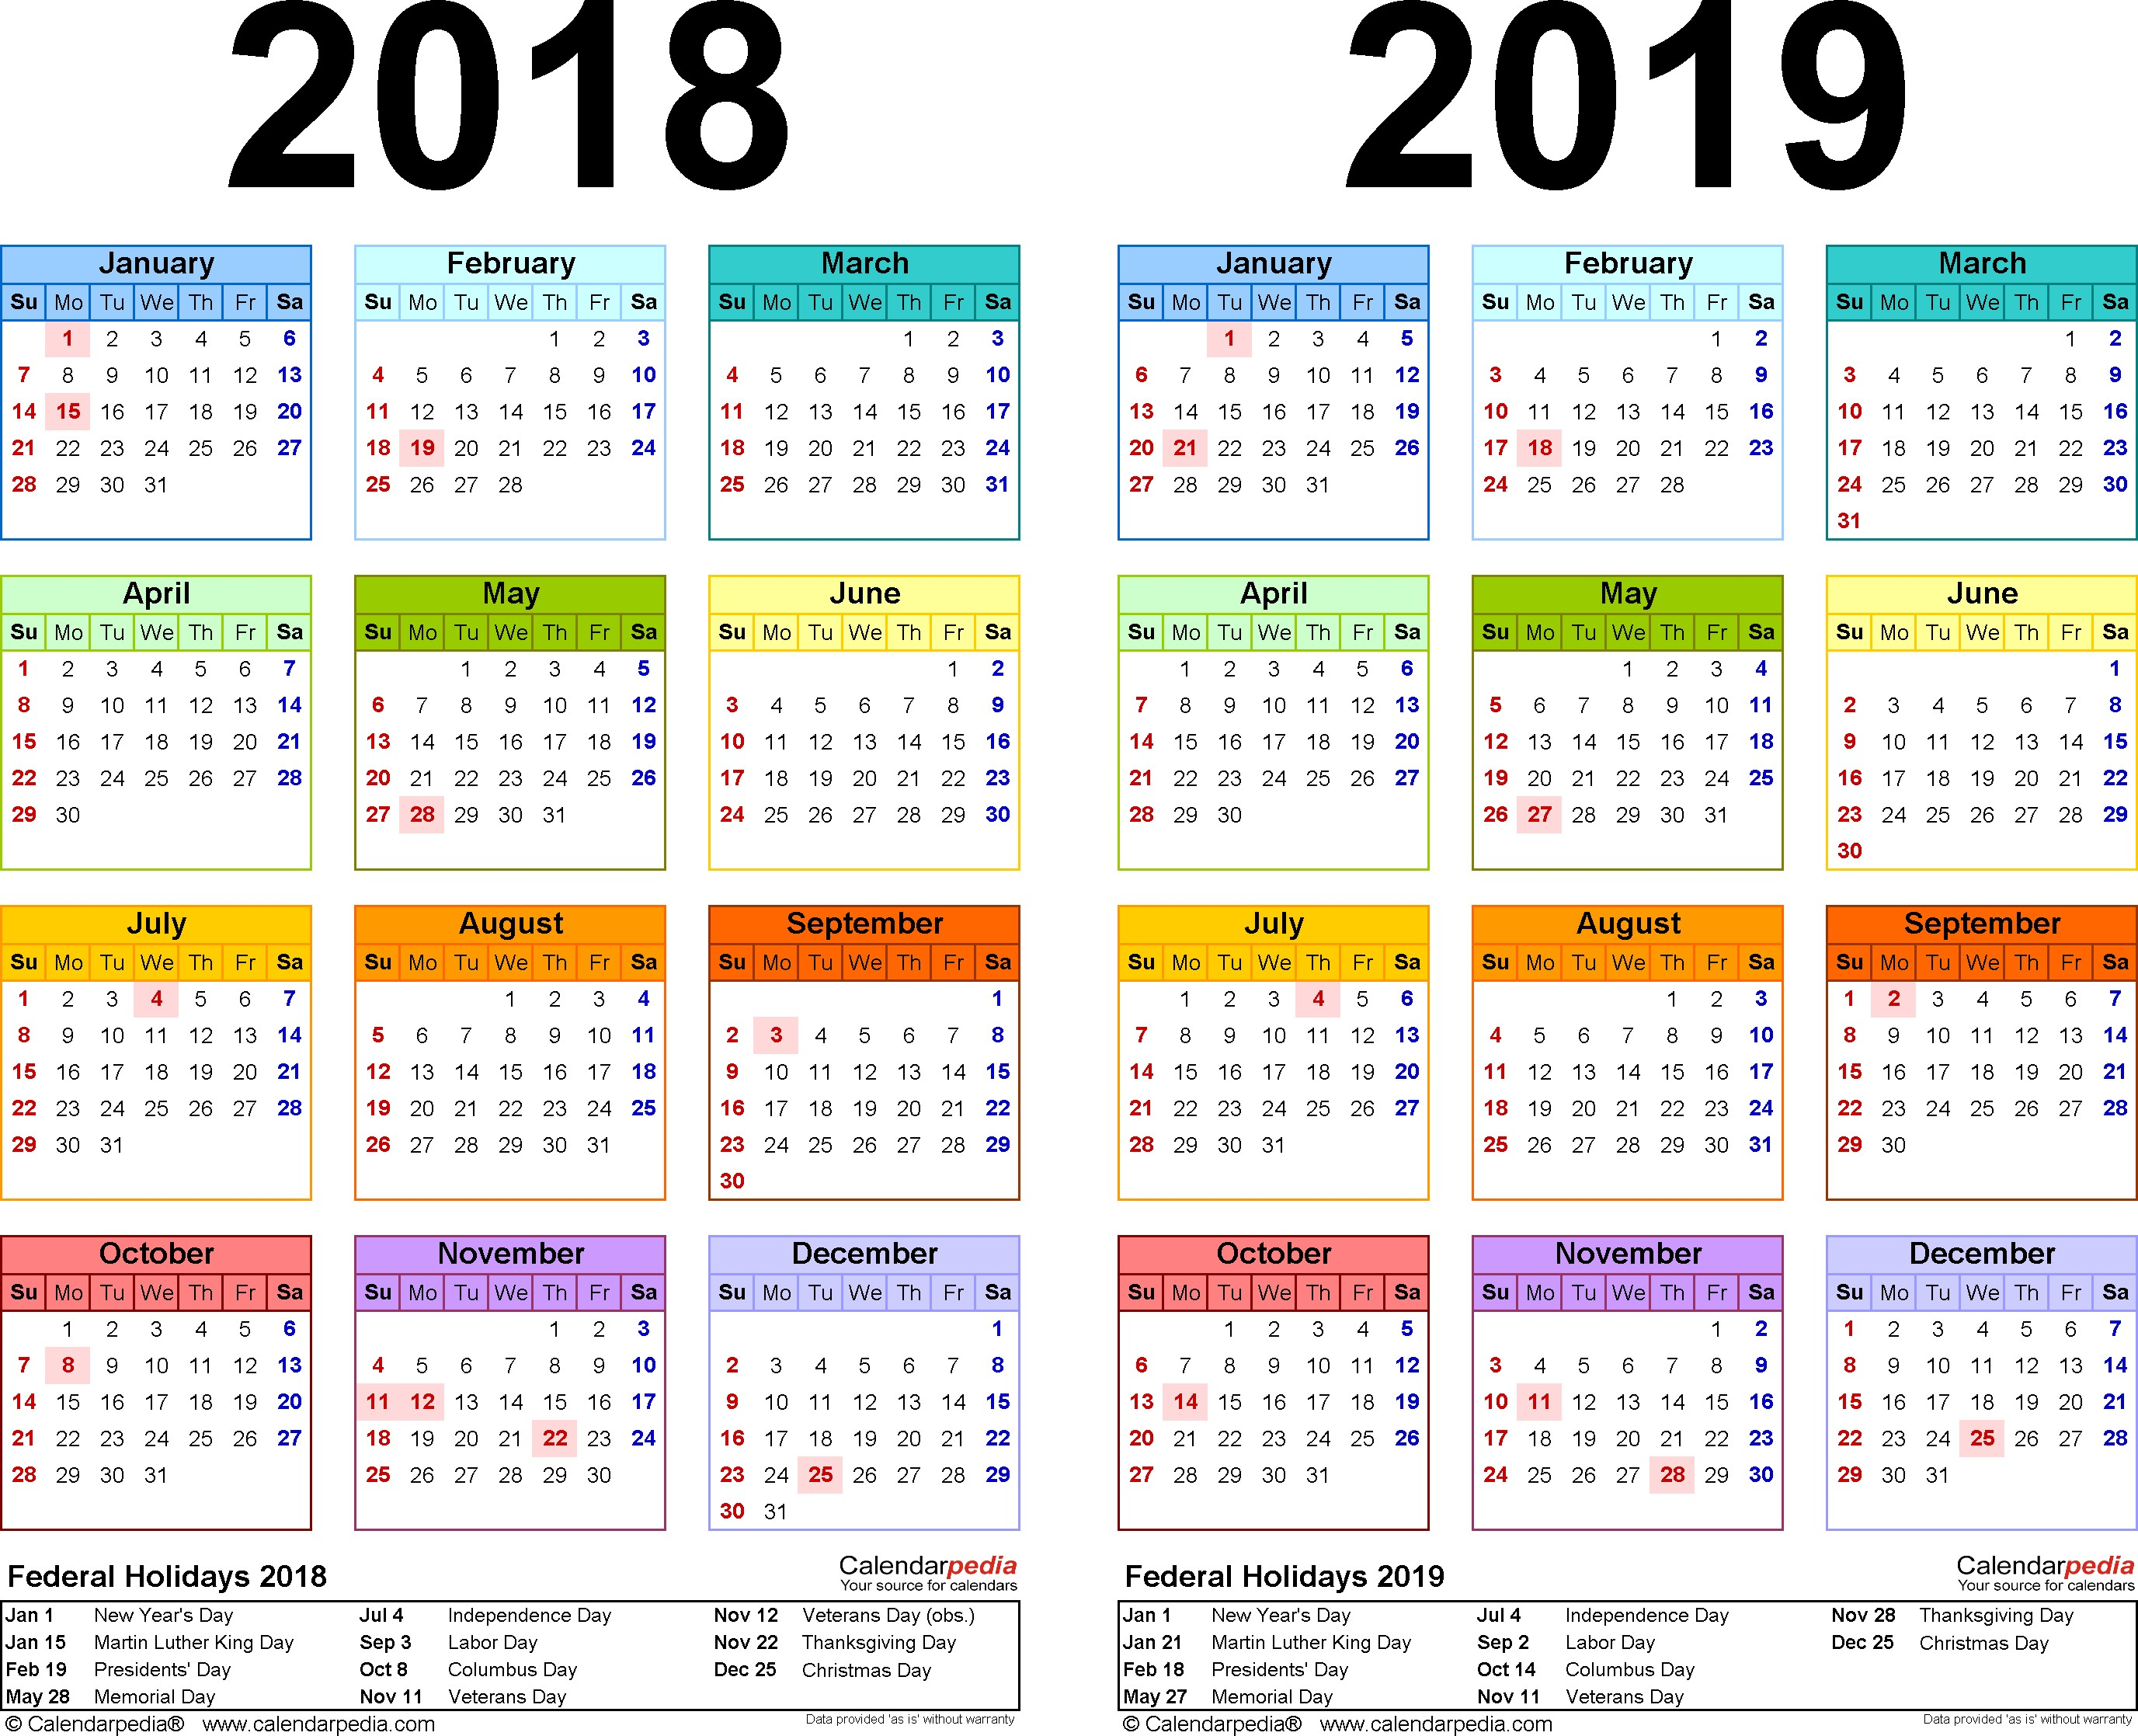 Kalender 2019 Excel Download Kostenlos Más Actual Kalender 2019 Book Of Kalender 2019 Excel Download Kostenlos Más Recientemente Liberado Calendar Editable Excel